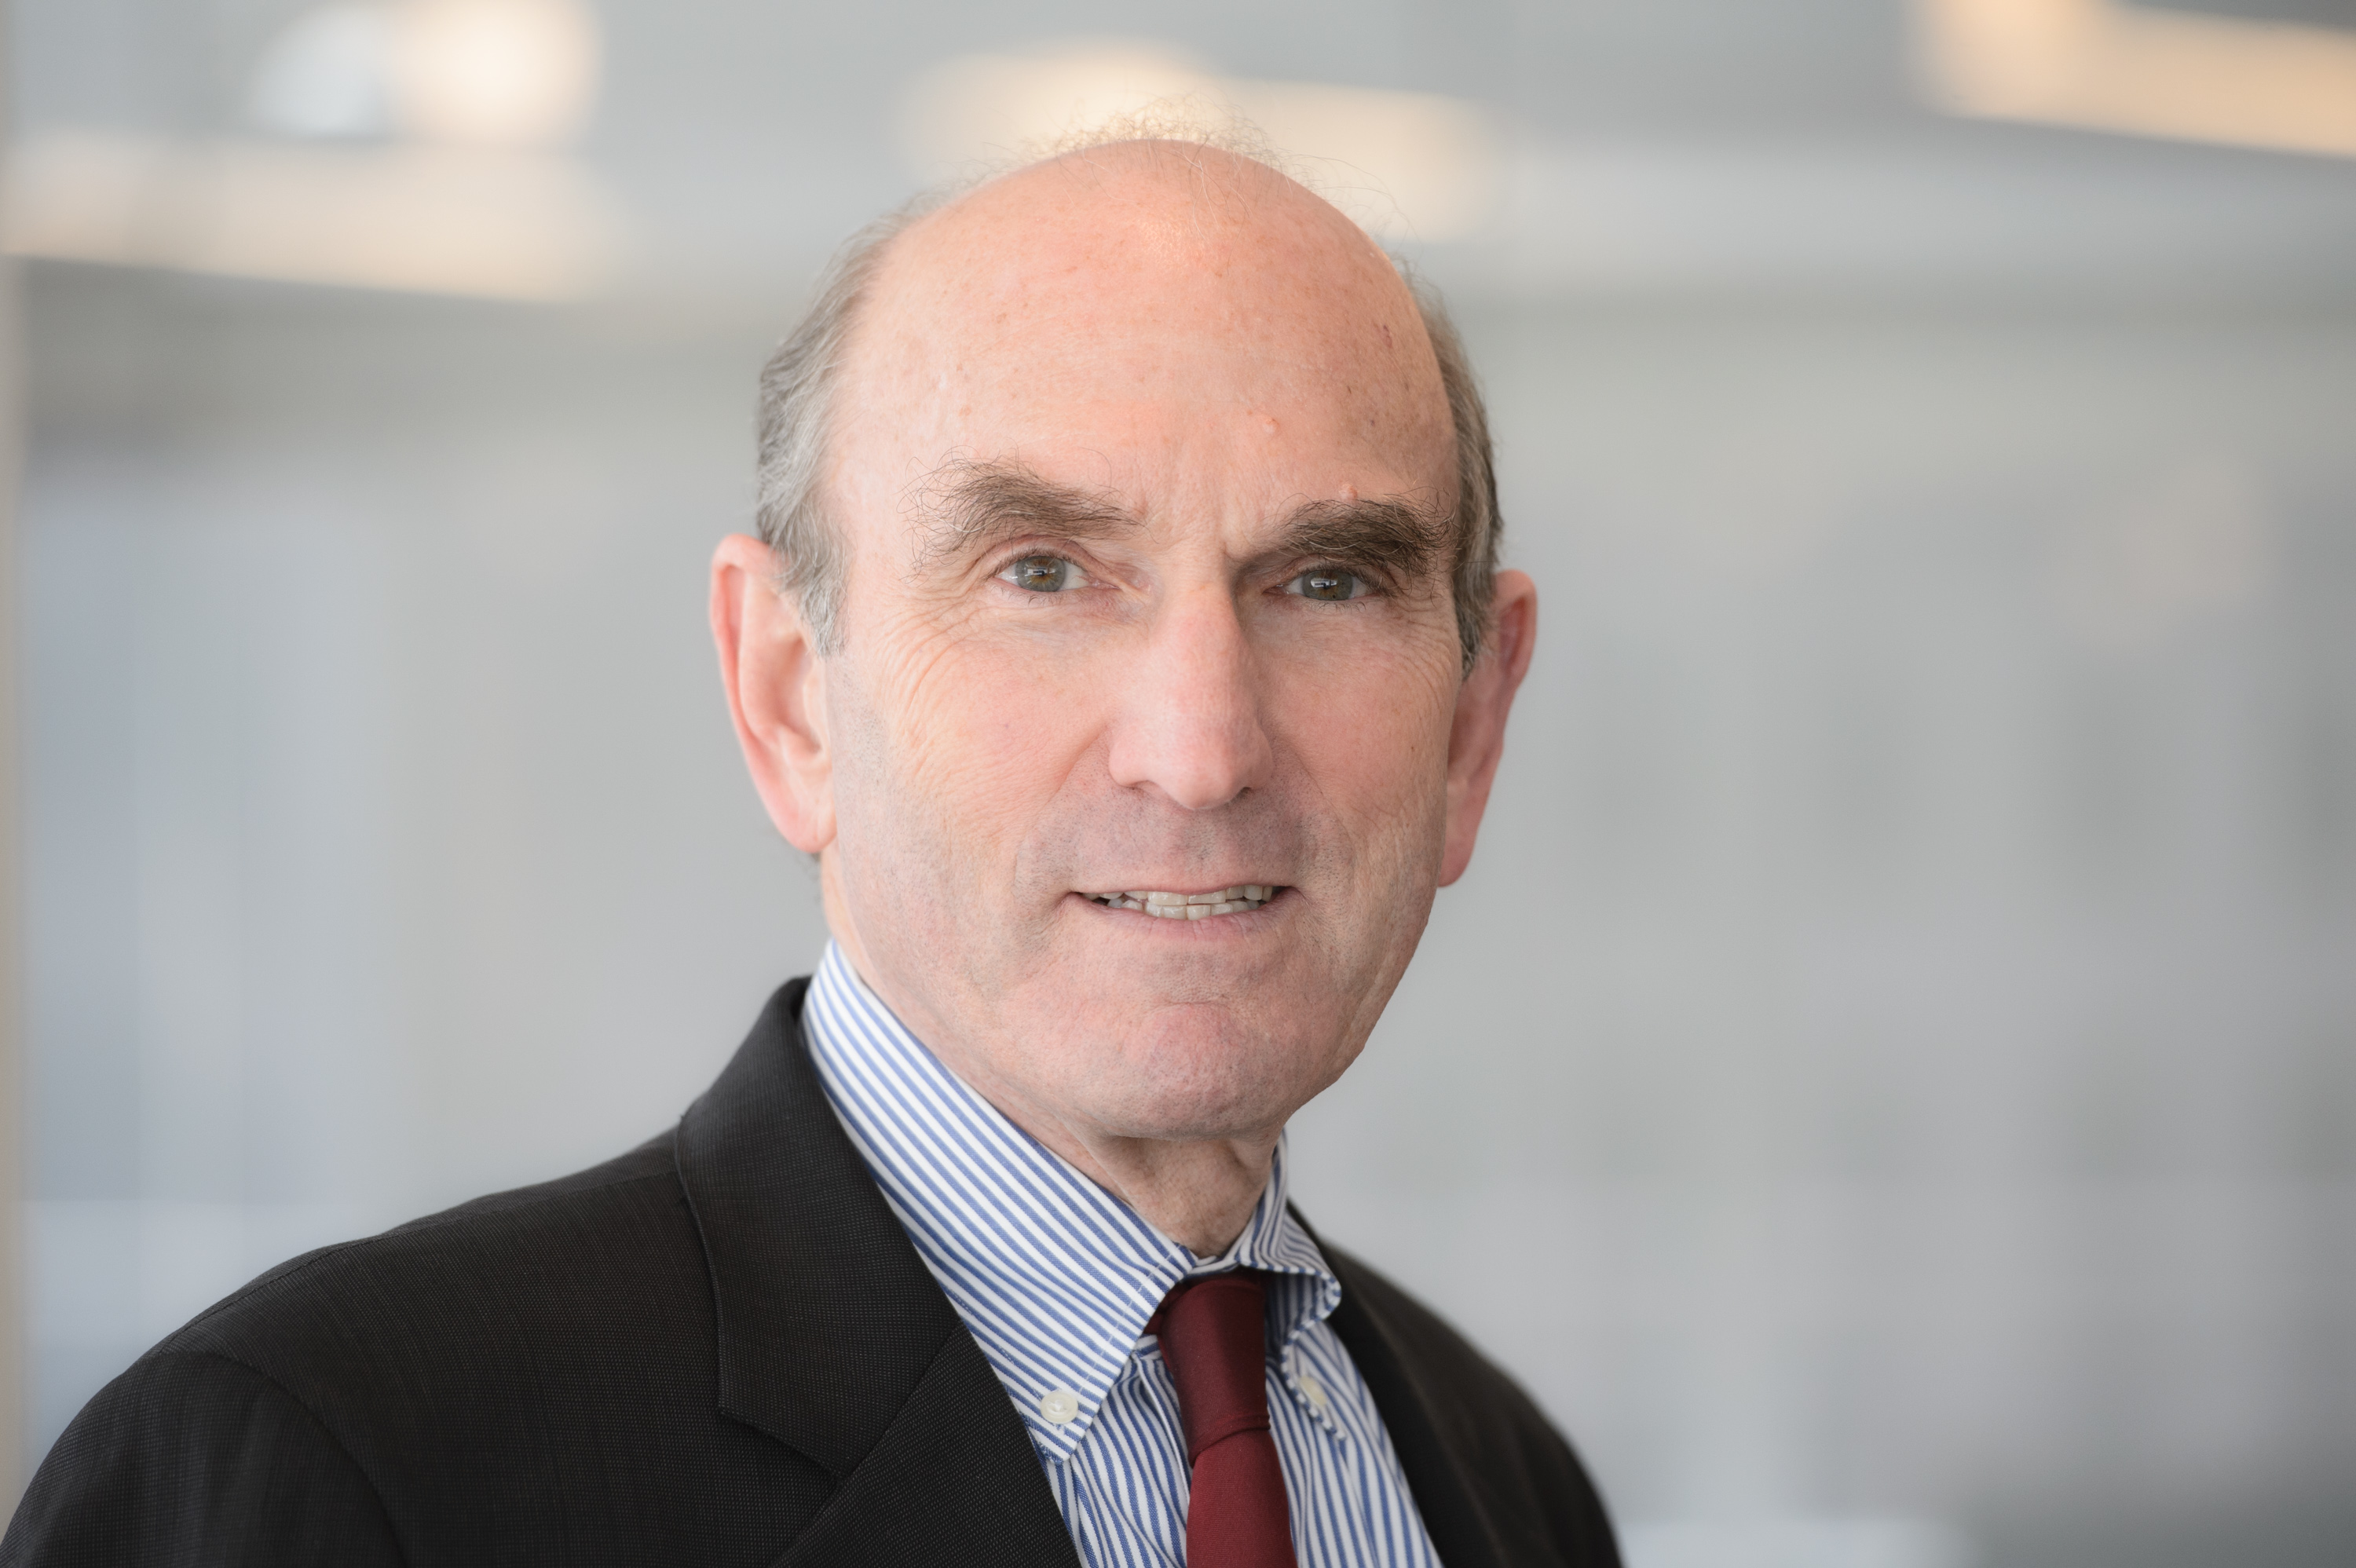 Elliott Abrams | Council on Foreign Relations